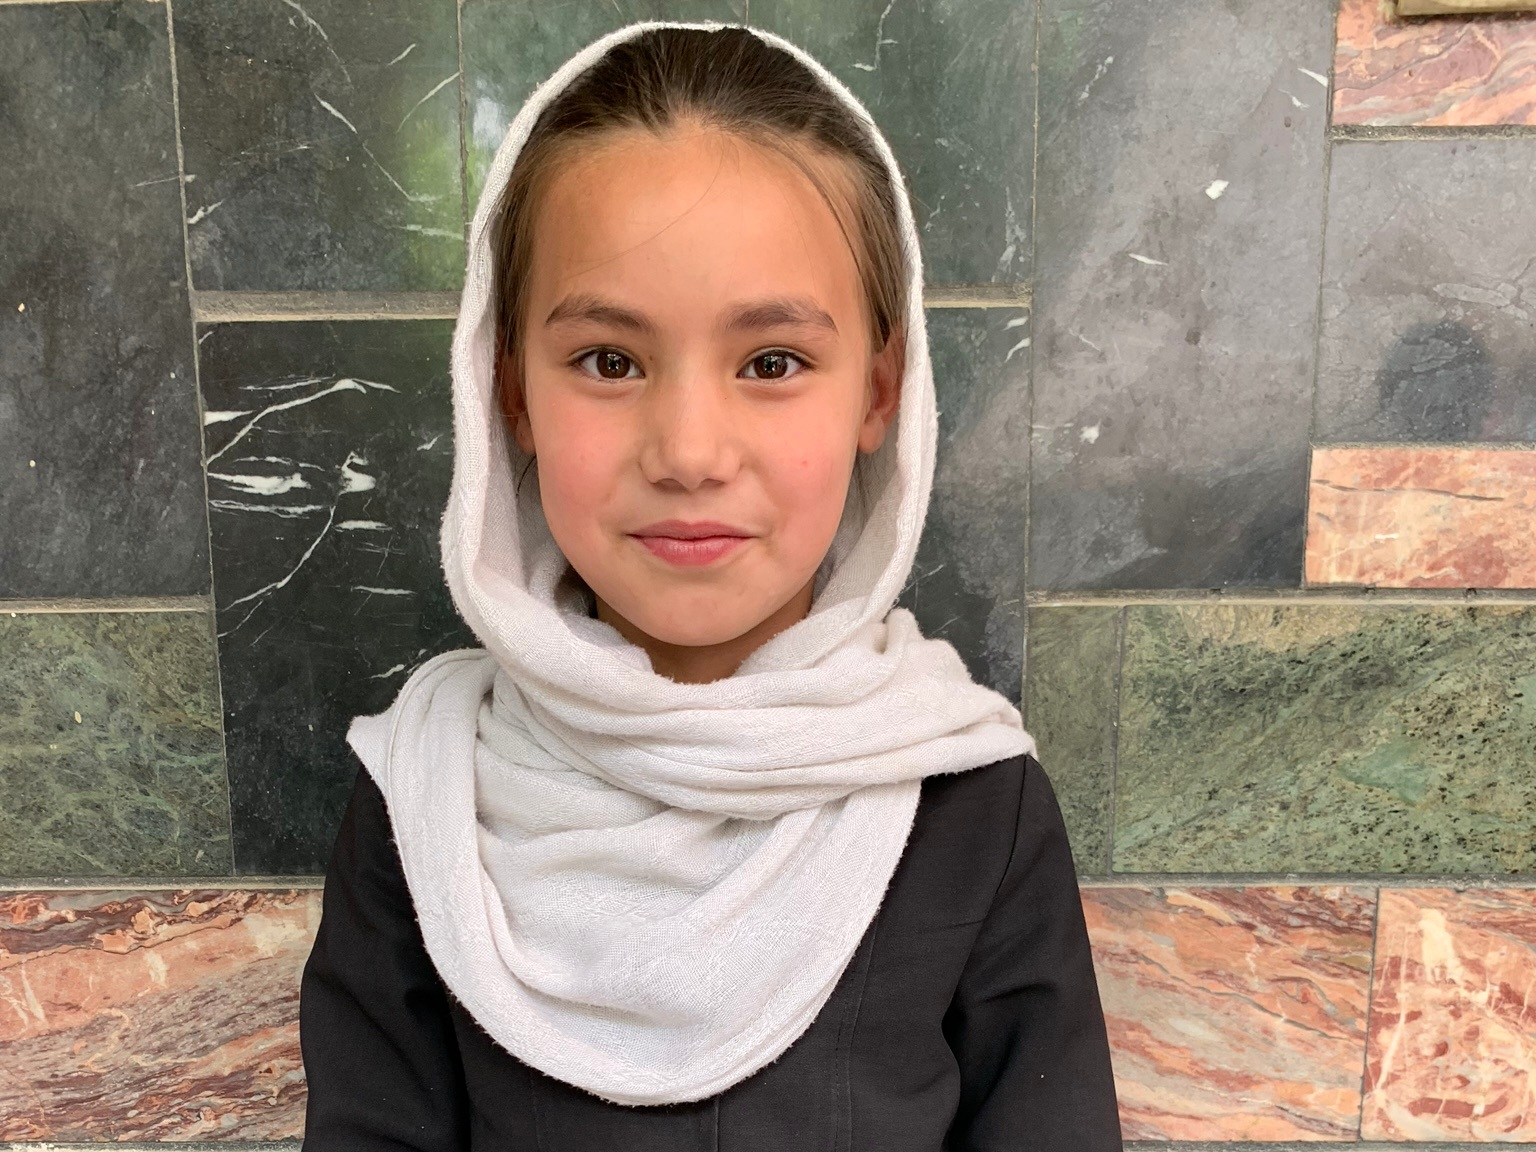 Muzhada, Age 9 - Muzhda has 5 siblings. Her mother is unemployed and her father is a construction worker.BE MUZHADA'S PARTNER>